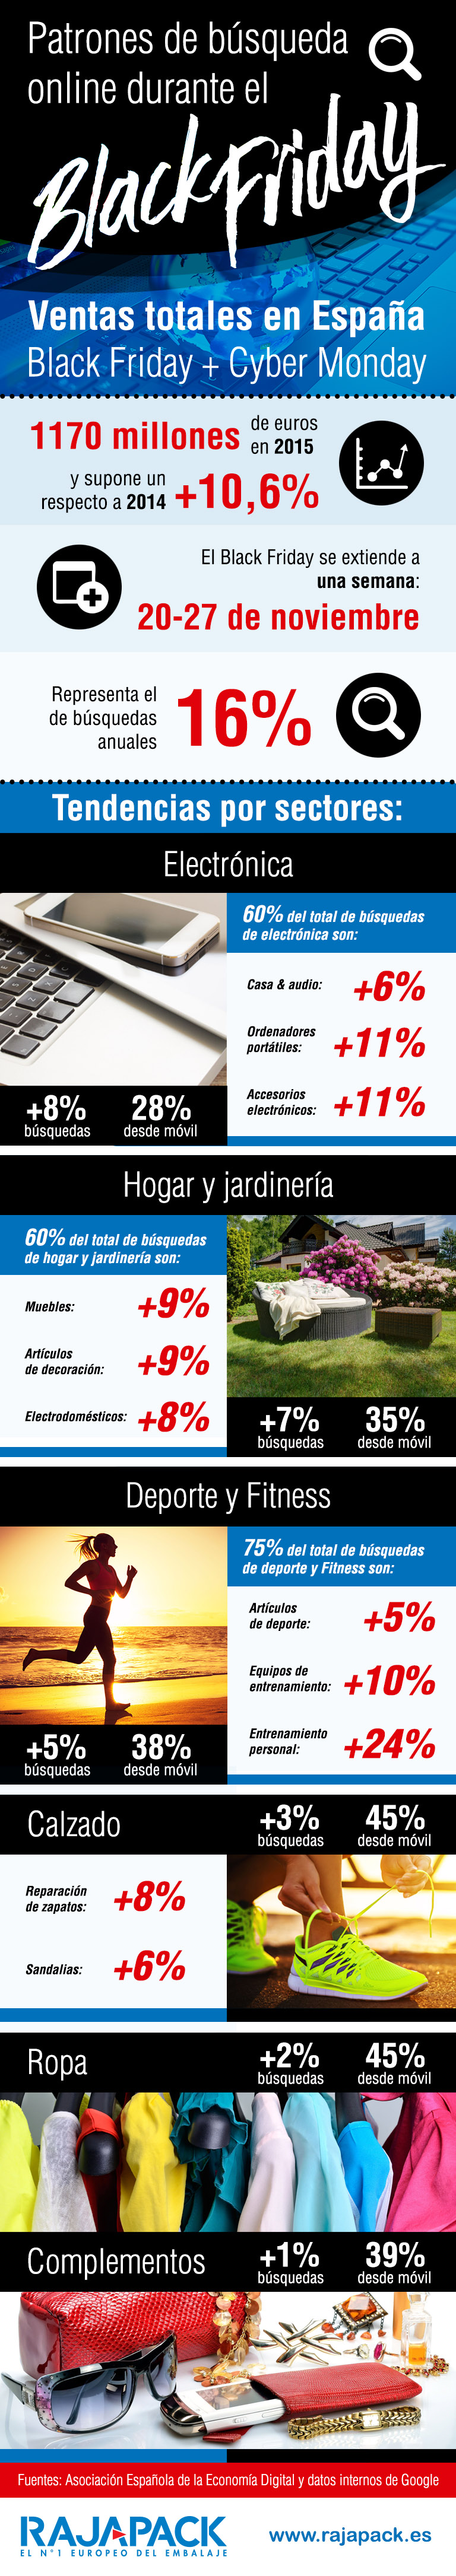 Principales tendencias de búsqueda en Google en Black Friday